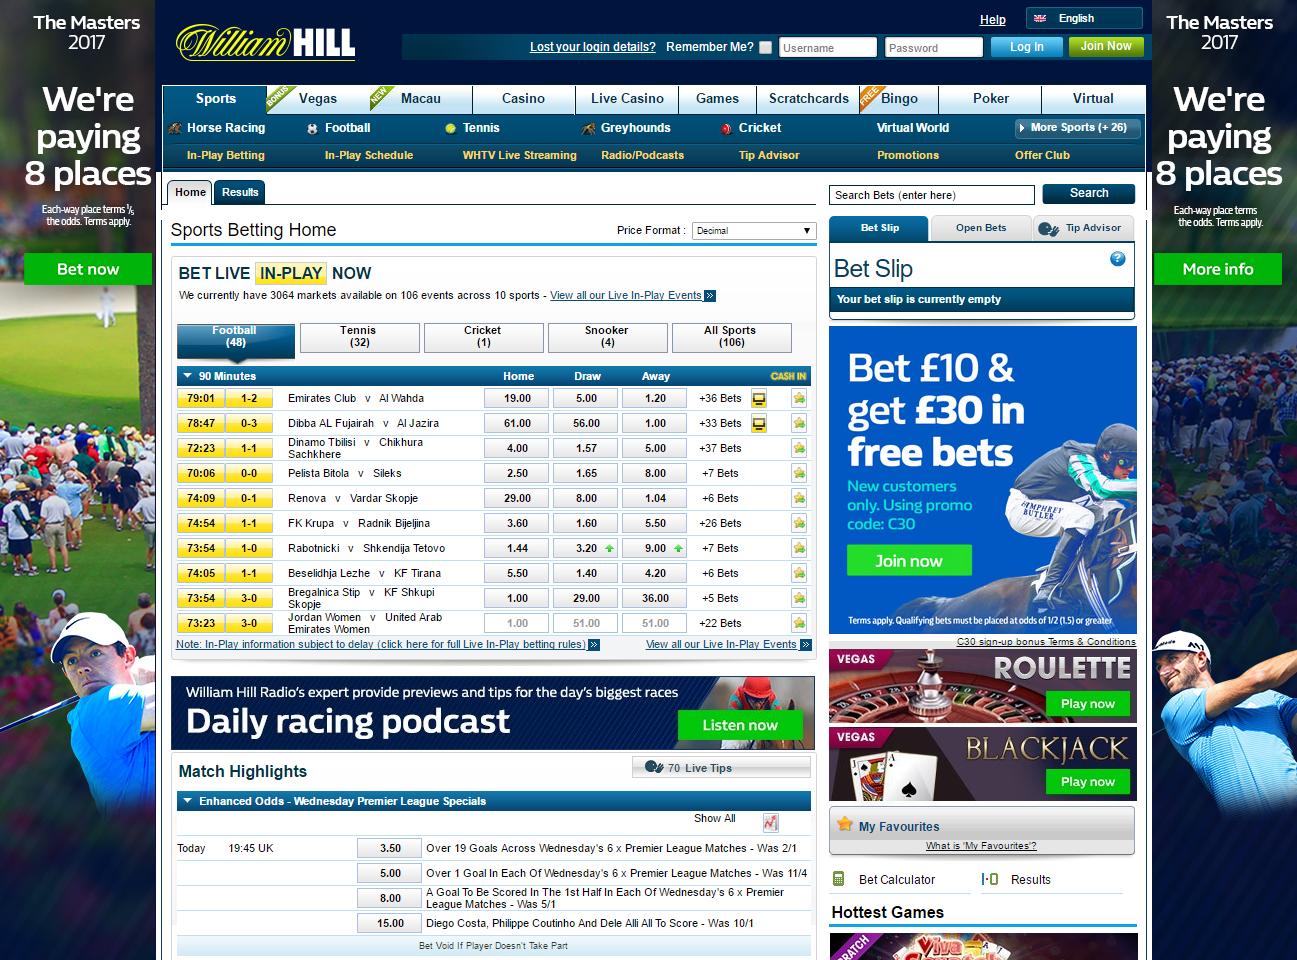 William Hill Бонусы